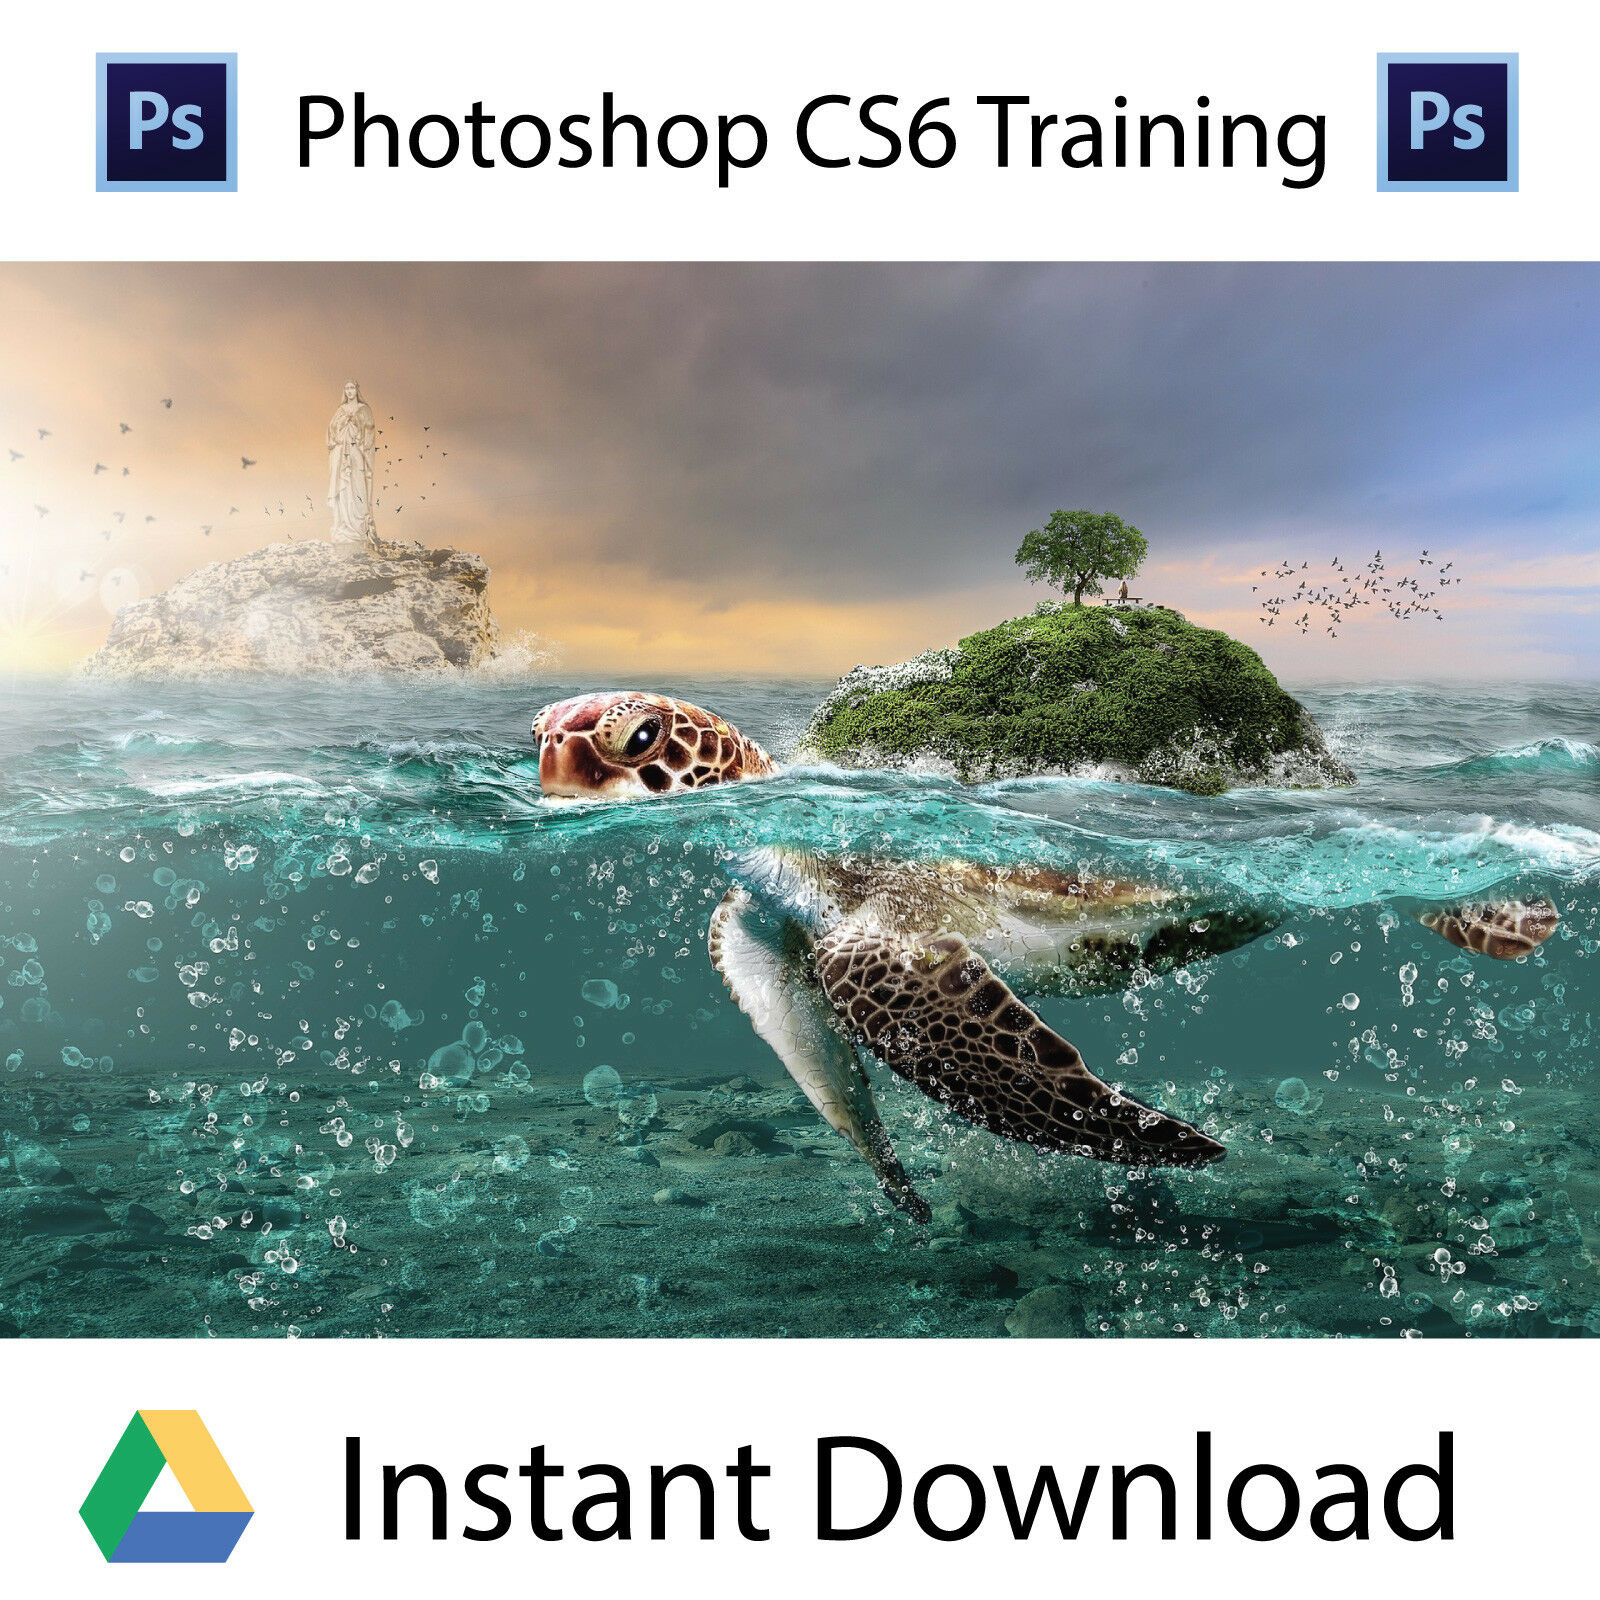 Adobe PhotoShop Training CS6 Professional Videos -Instant Download